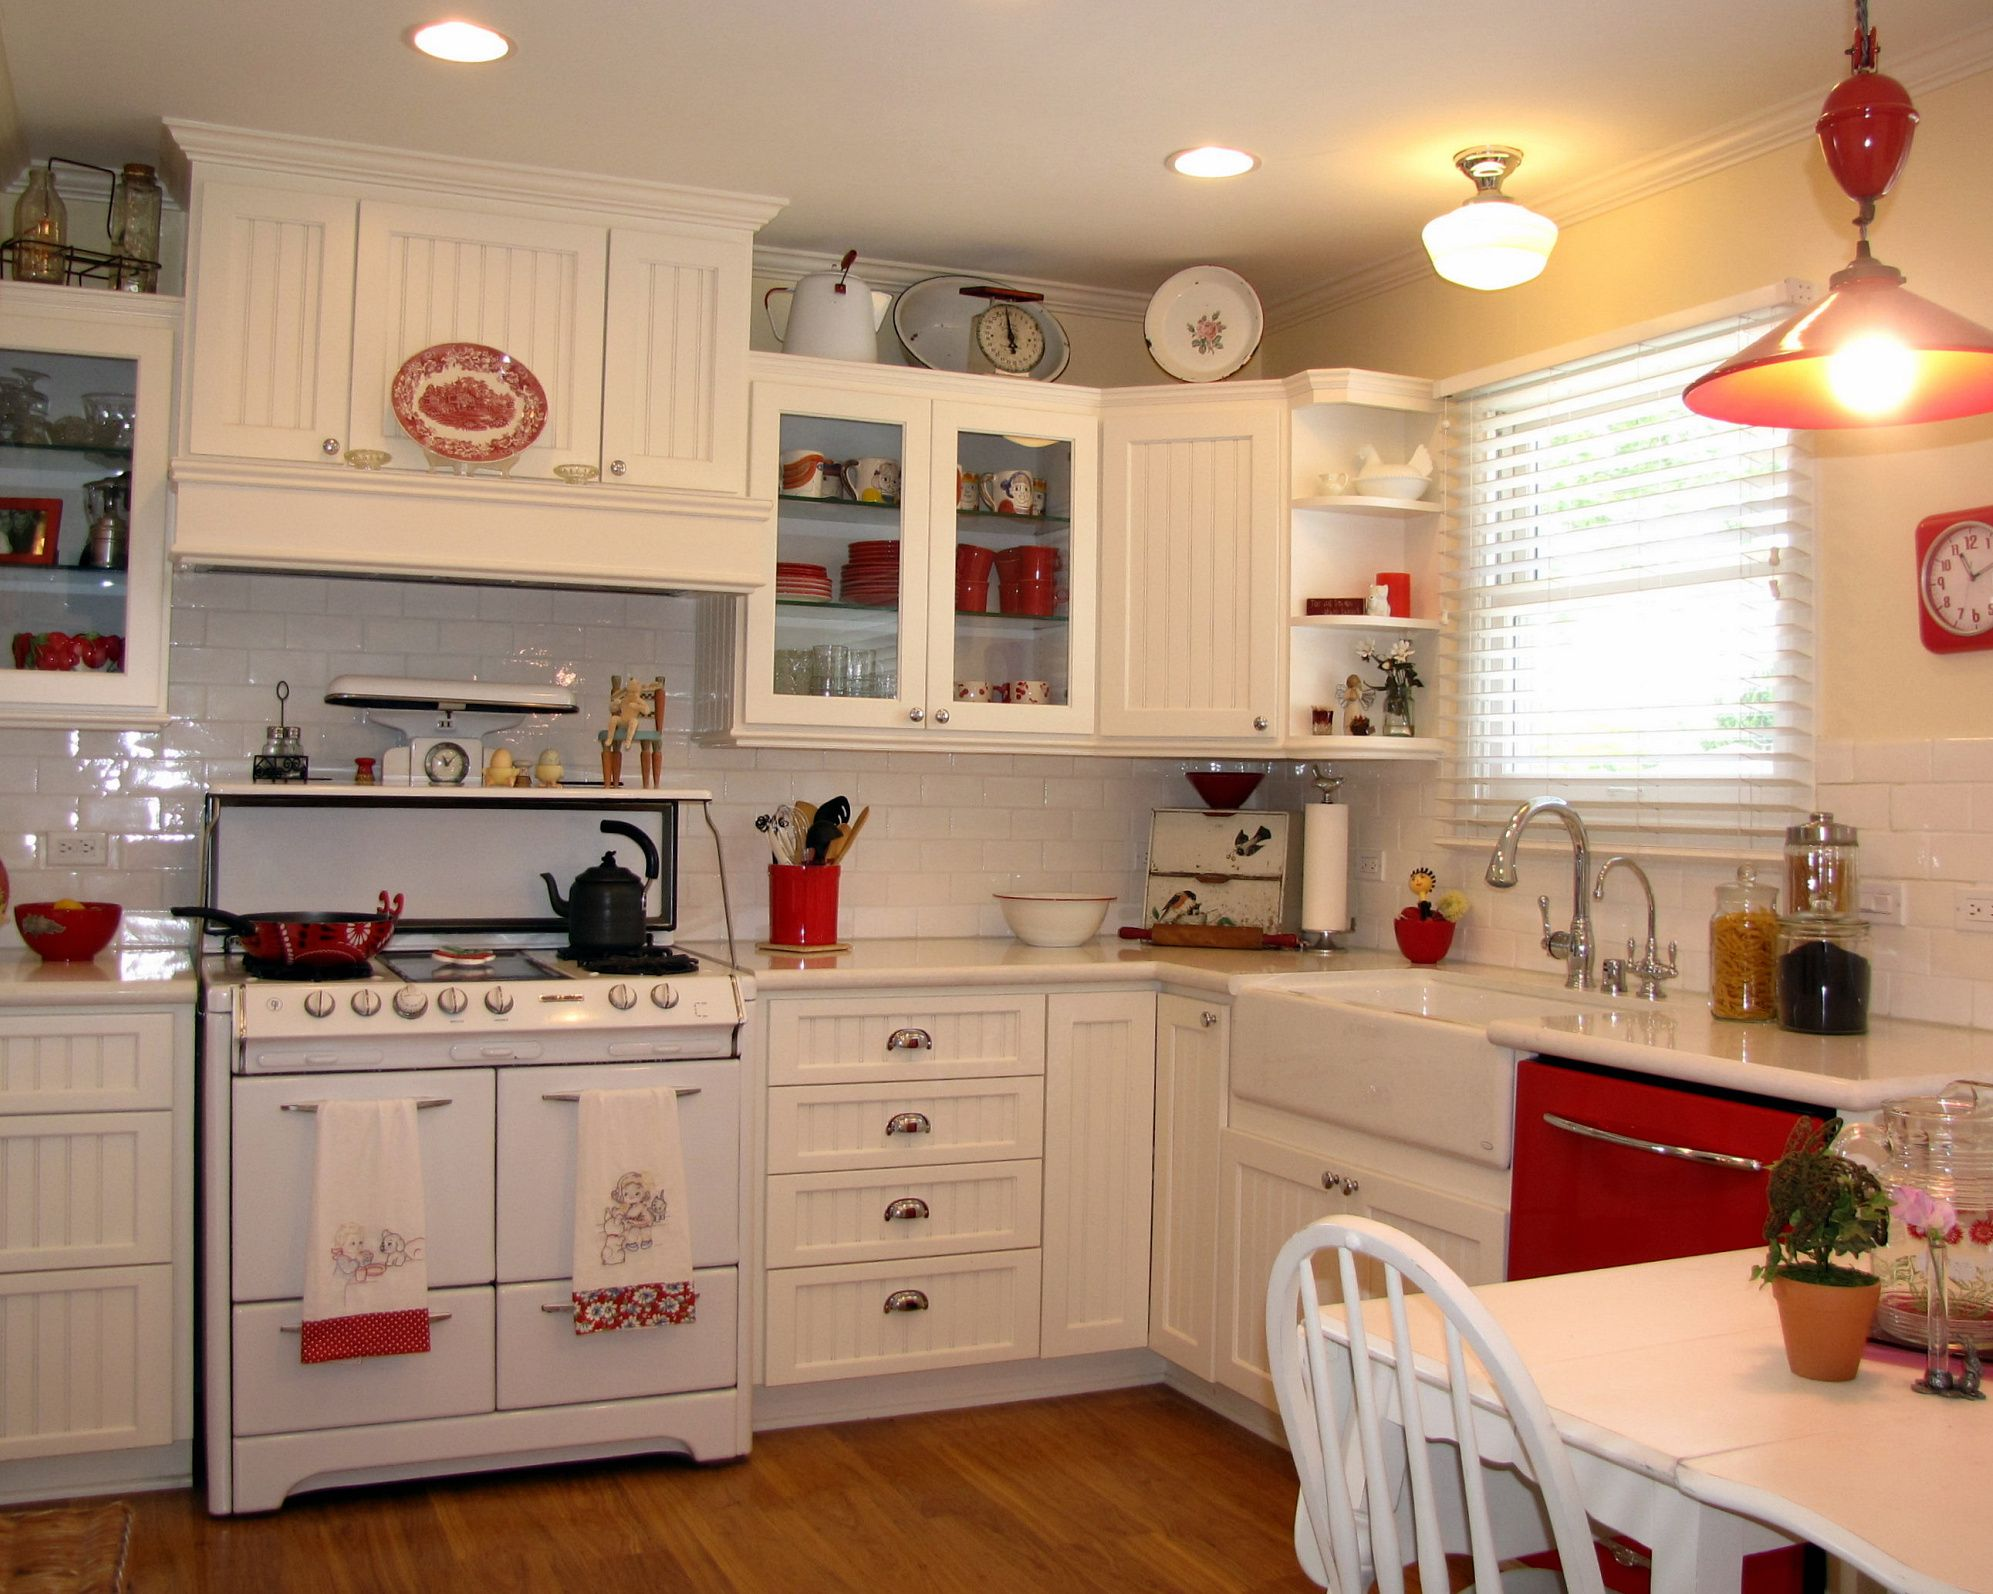 Vintage Kitchen Cultivate love the red and white Kitchen